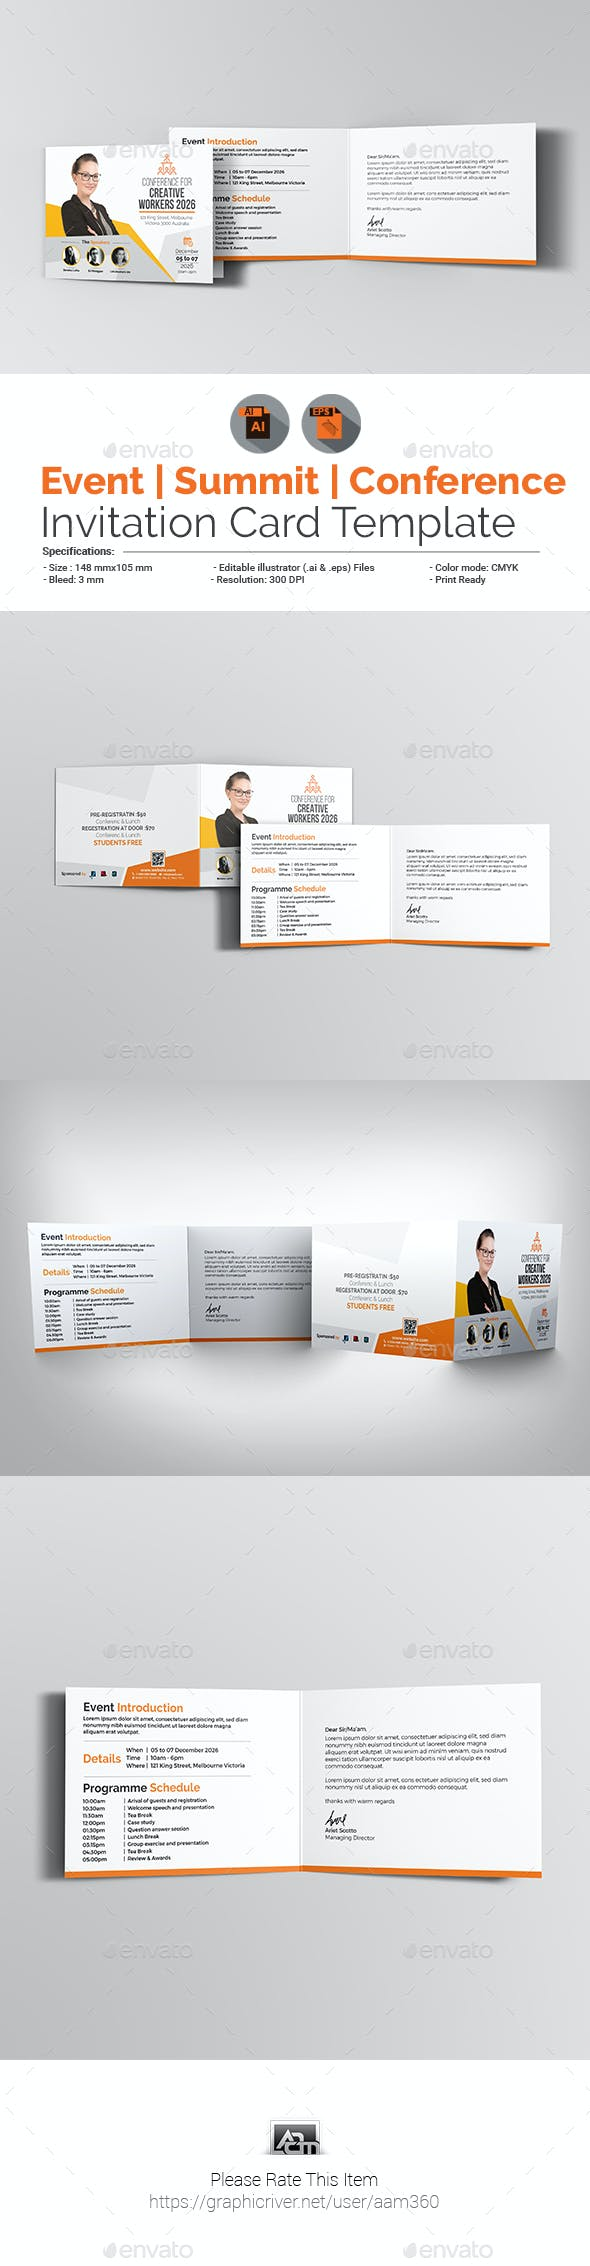 Event Summit Conference Invitation Card Template